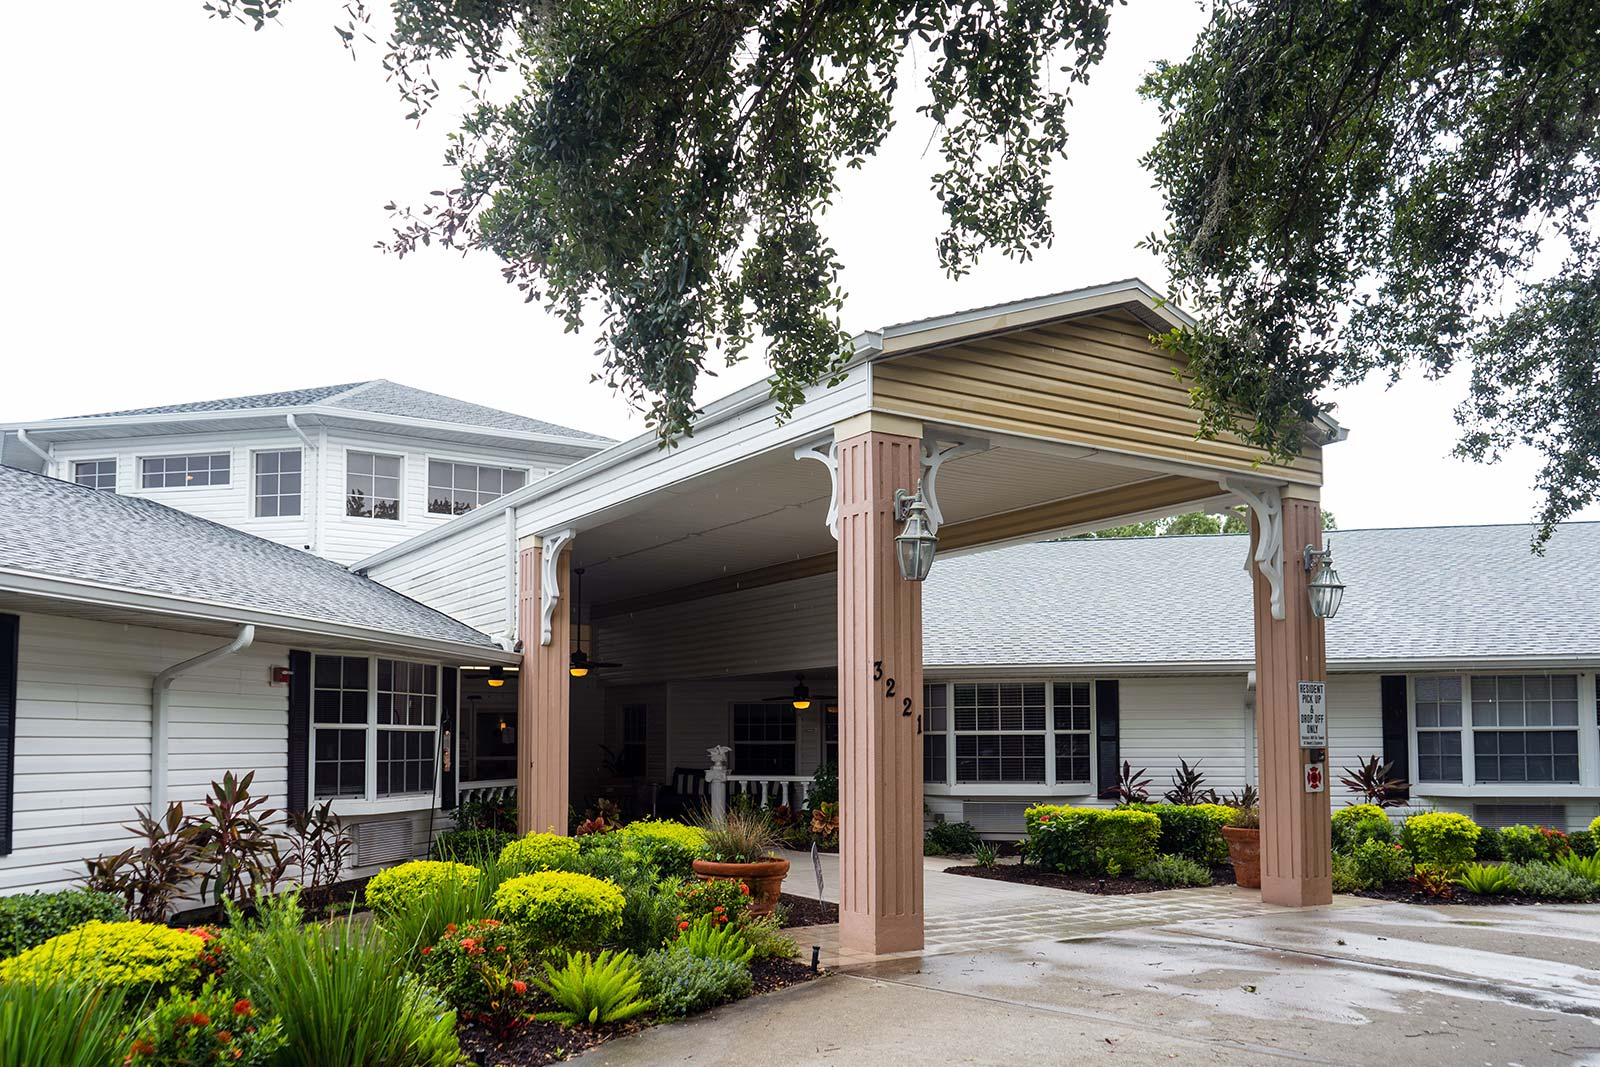 Front entrance at Heron House assisted living and memory care community in Sarasota, FL